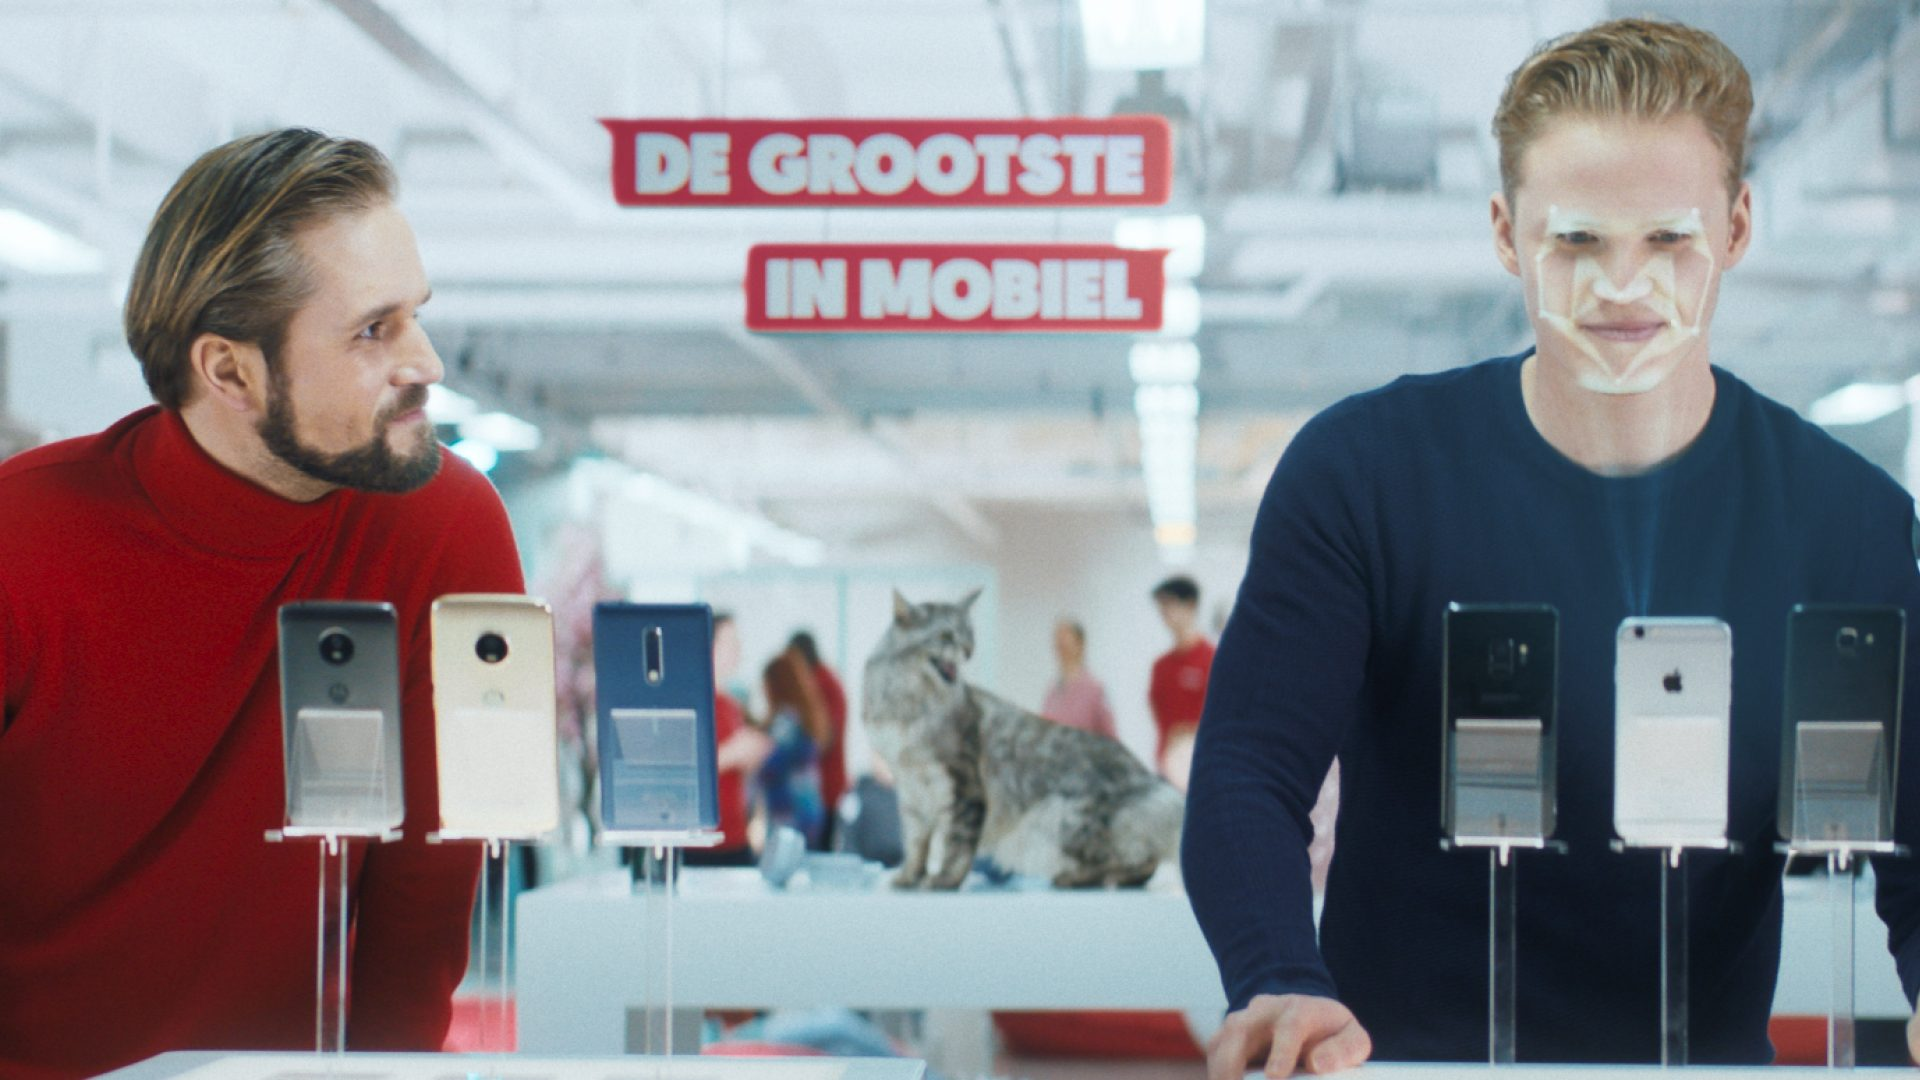 Media Markt Phone Tvc 40S Jwthf 29653 436 Still005